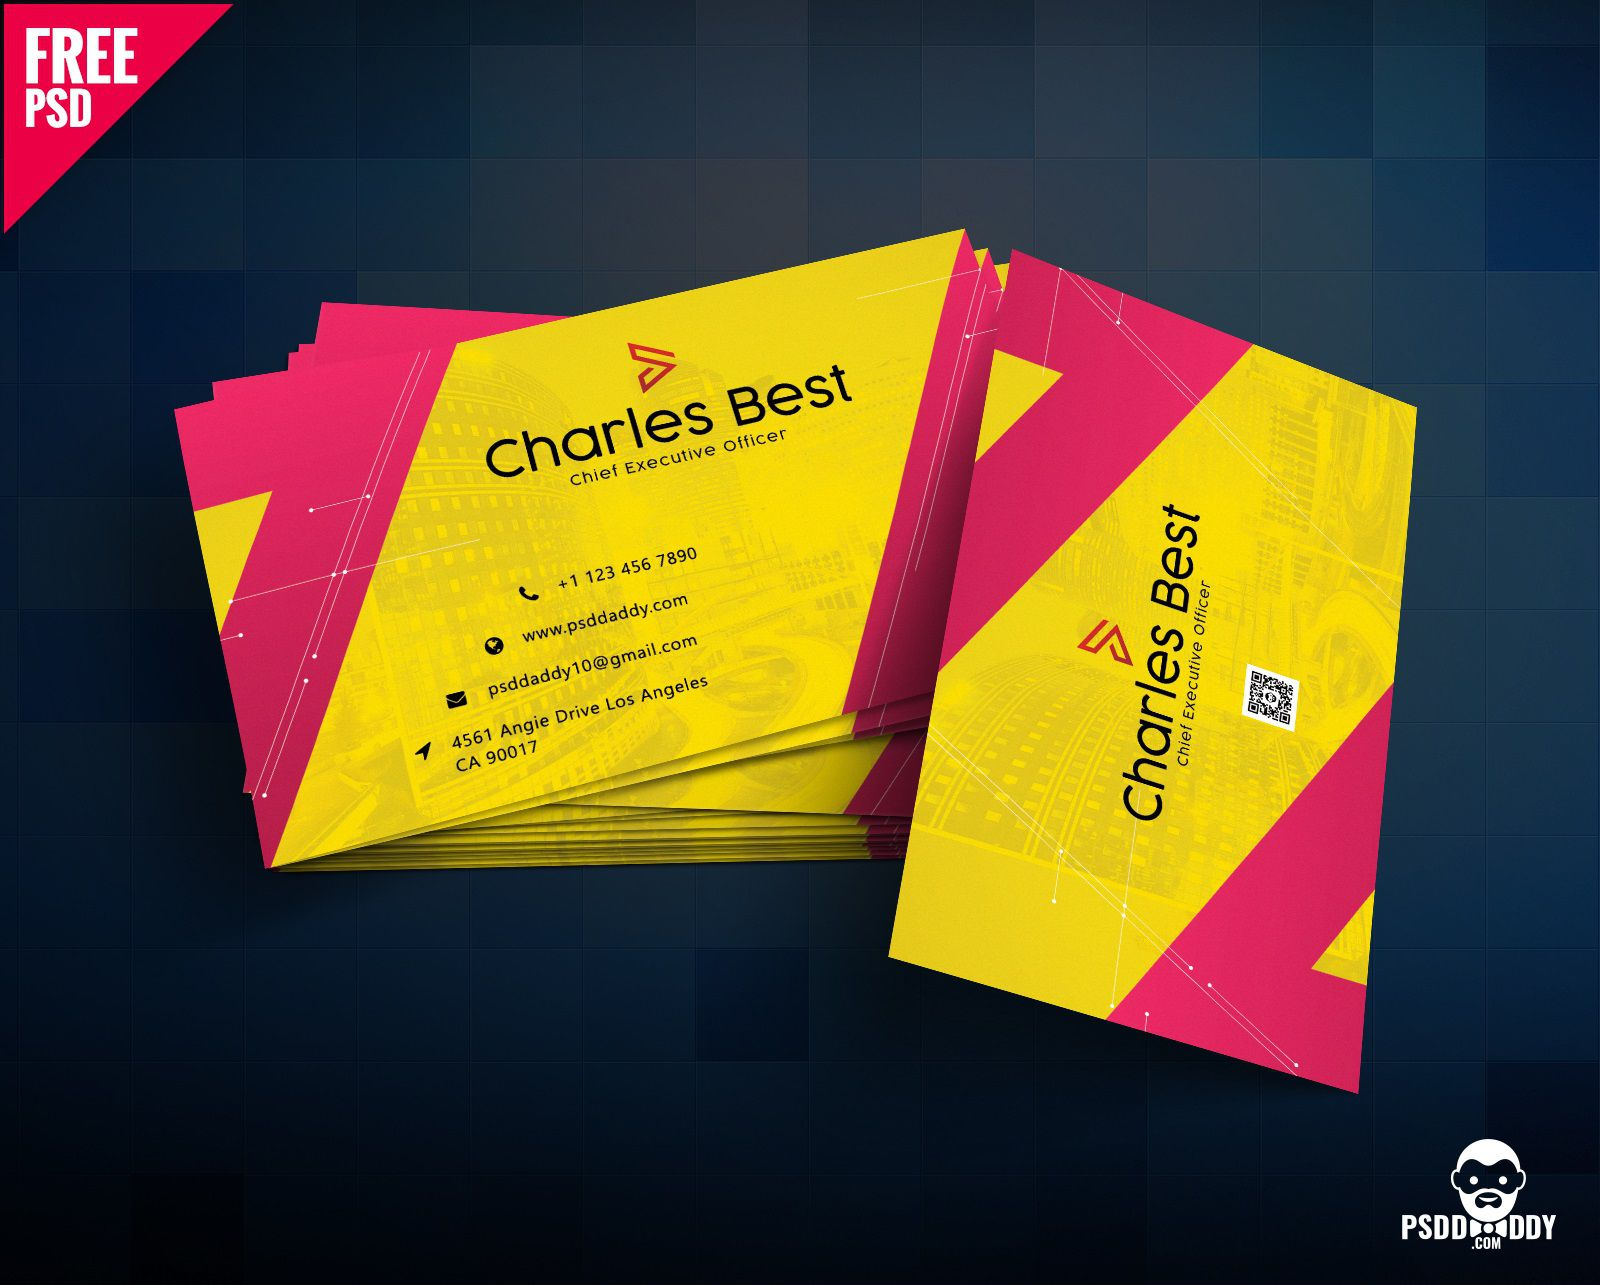 006 Unforgettable Free Adobe Photoshop Busines Card Template Highest Quality  Templates DownloadFull